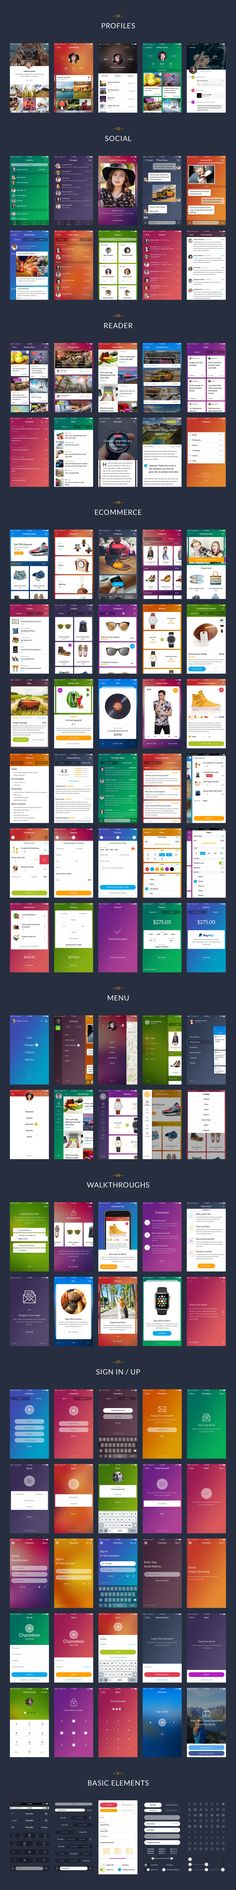 Complete mobile layout design inspiration. #mobile #ui #UserInterface #Design #app #UX #UserExperience